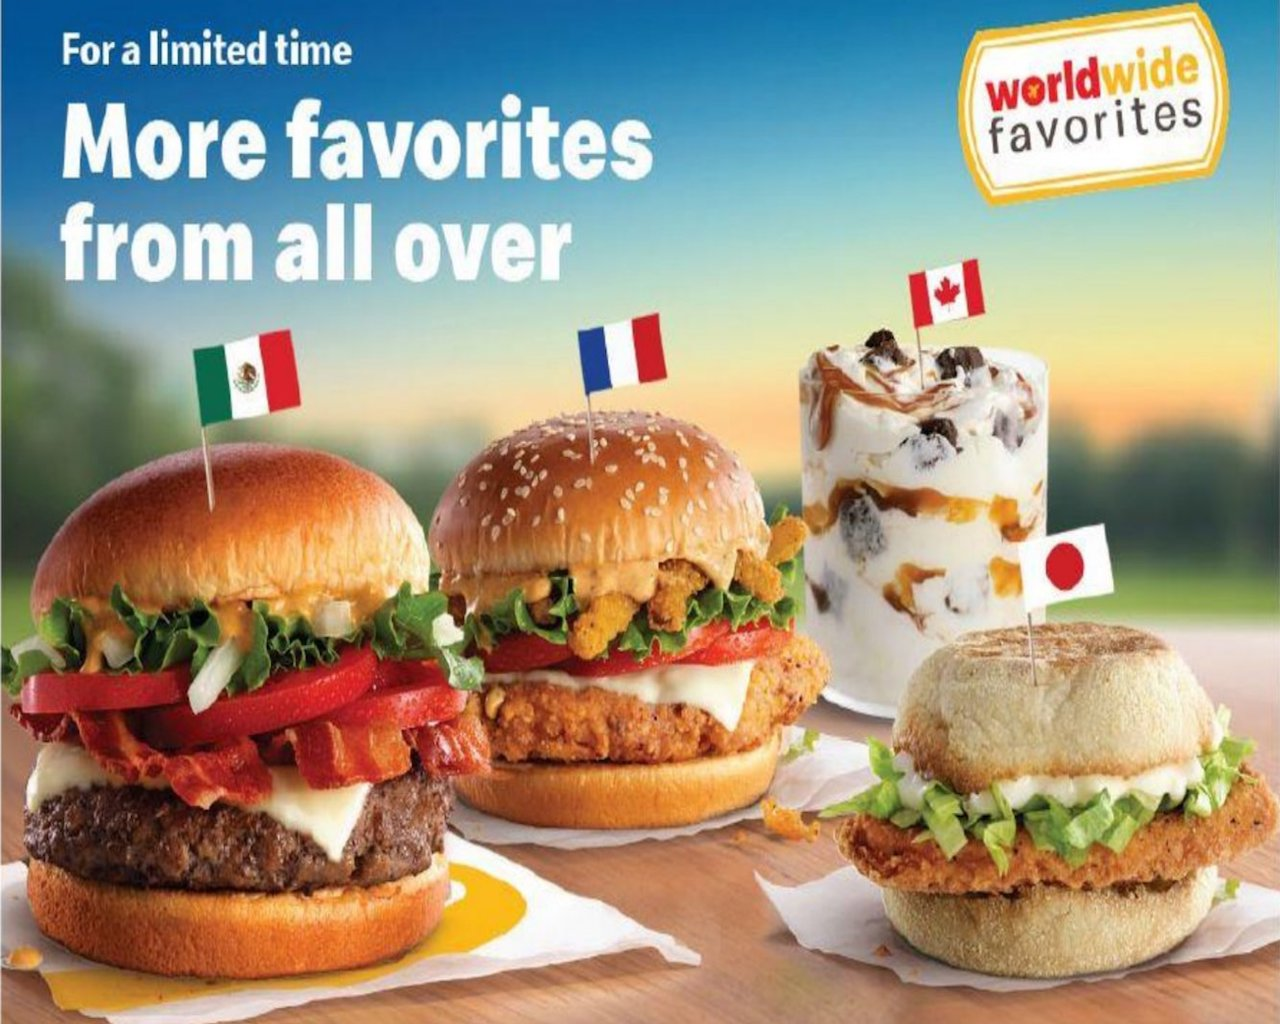 mcdonalds-international-favorites-2